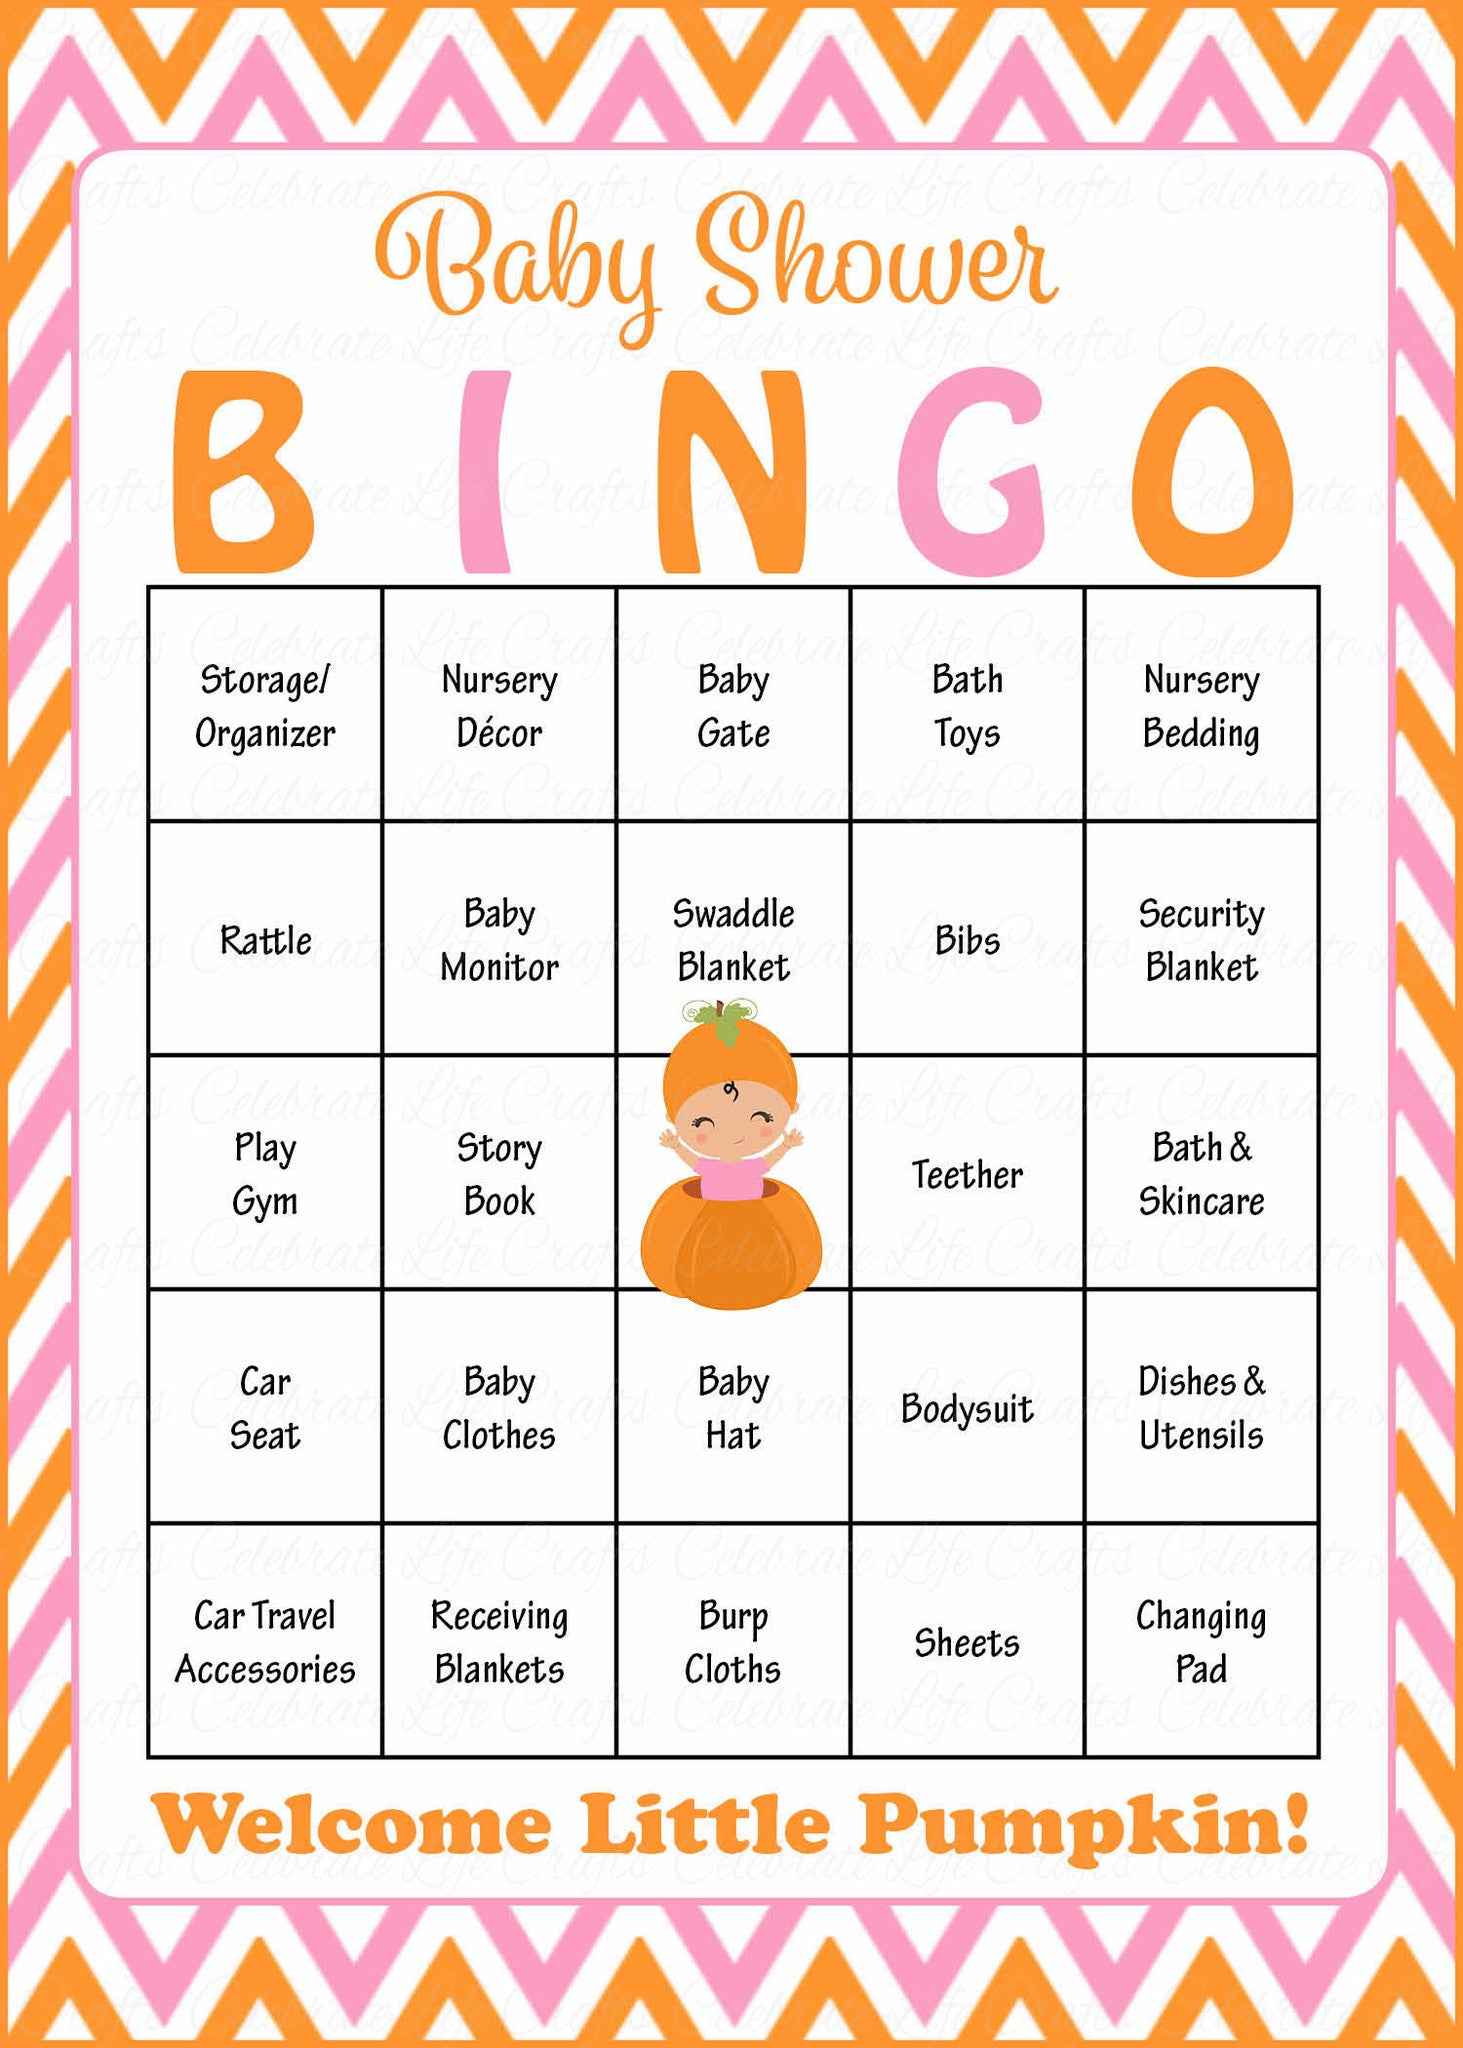 Little pumpkin baby shower game download for girl baby bingo little pumpkin baby shower game baby bingo cards for girl printable download prefilled orange pink solutioingenieria Gallery